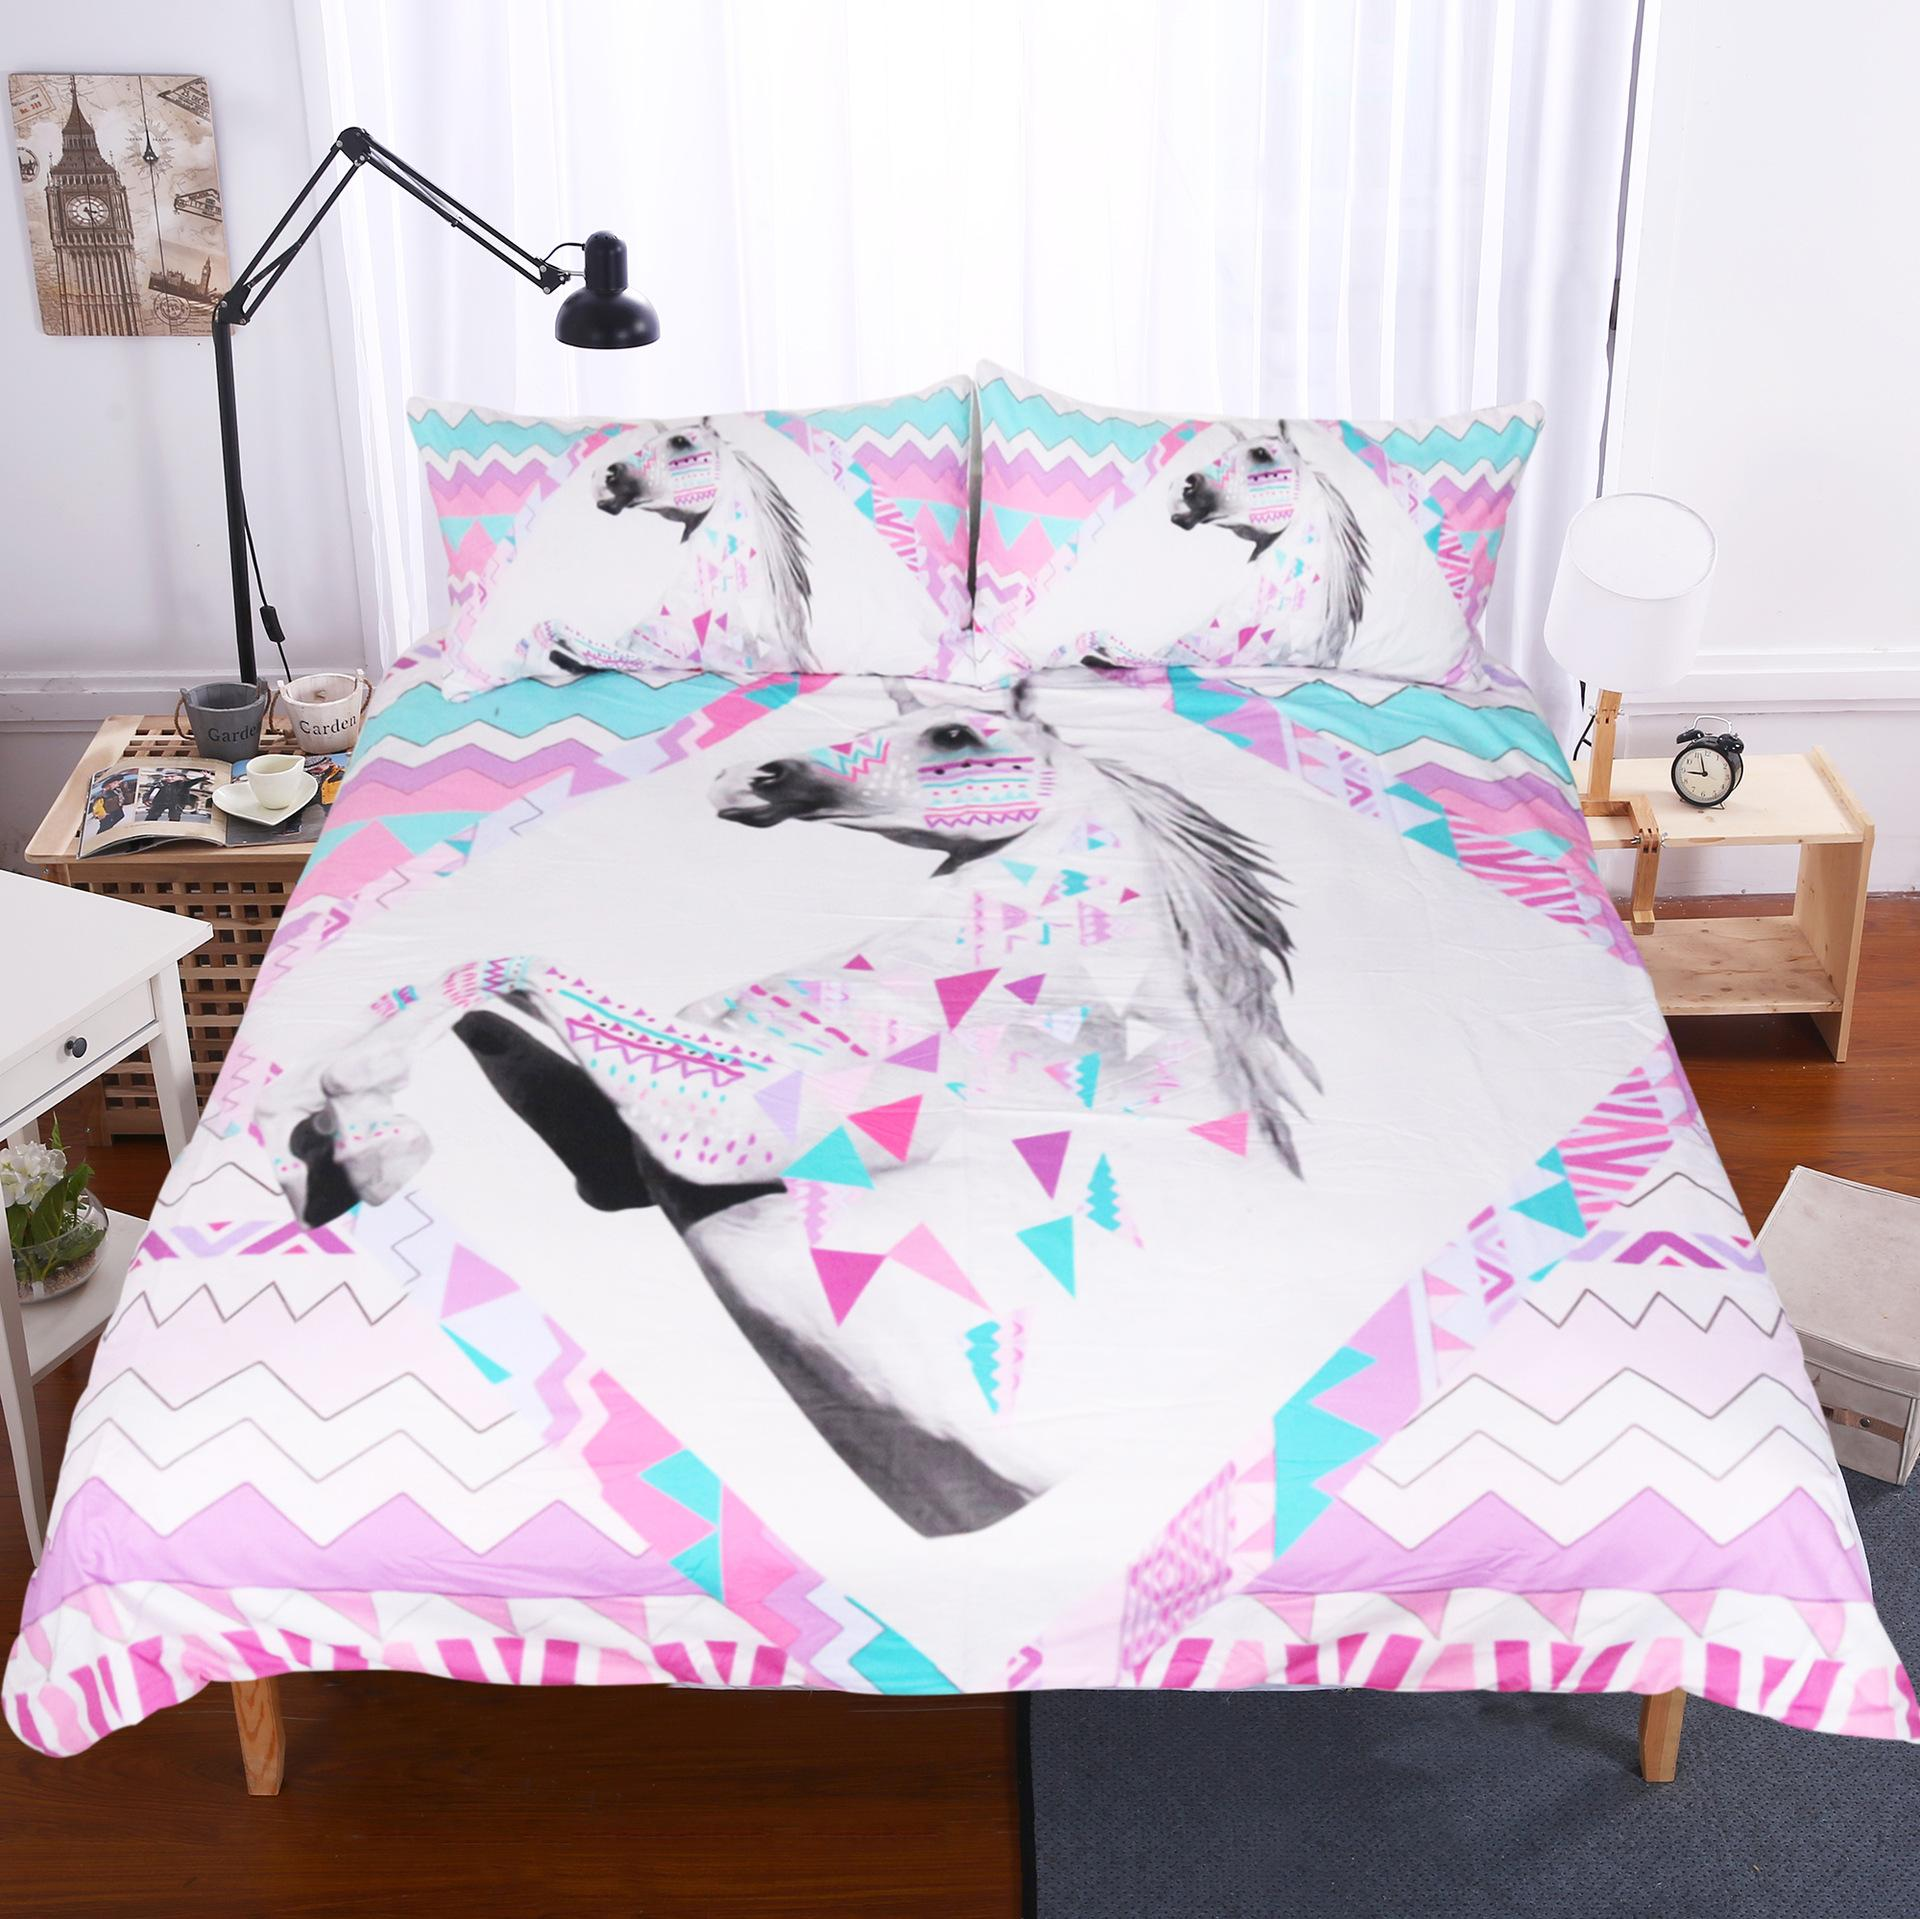 3d Unicorn Bedding Set Queen Size Watercolor Print Bed Set Kids Girl Flower  Duvet Cover Colored Dreamlike Bedlinen Gold Bedding Queen Comforter From ...